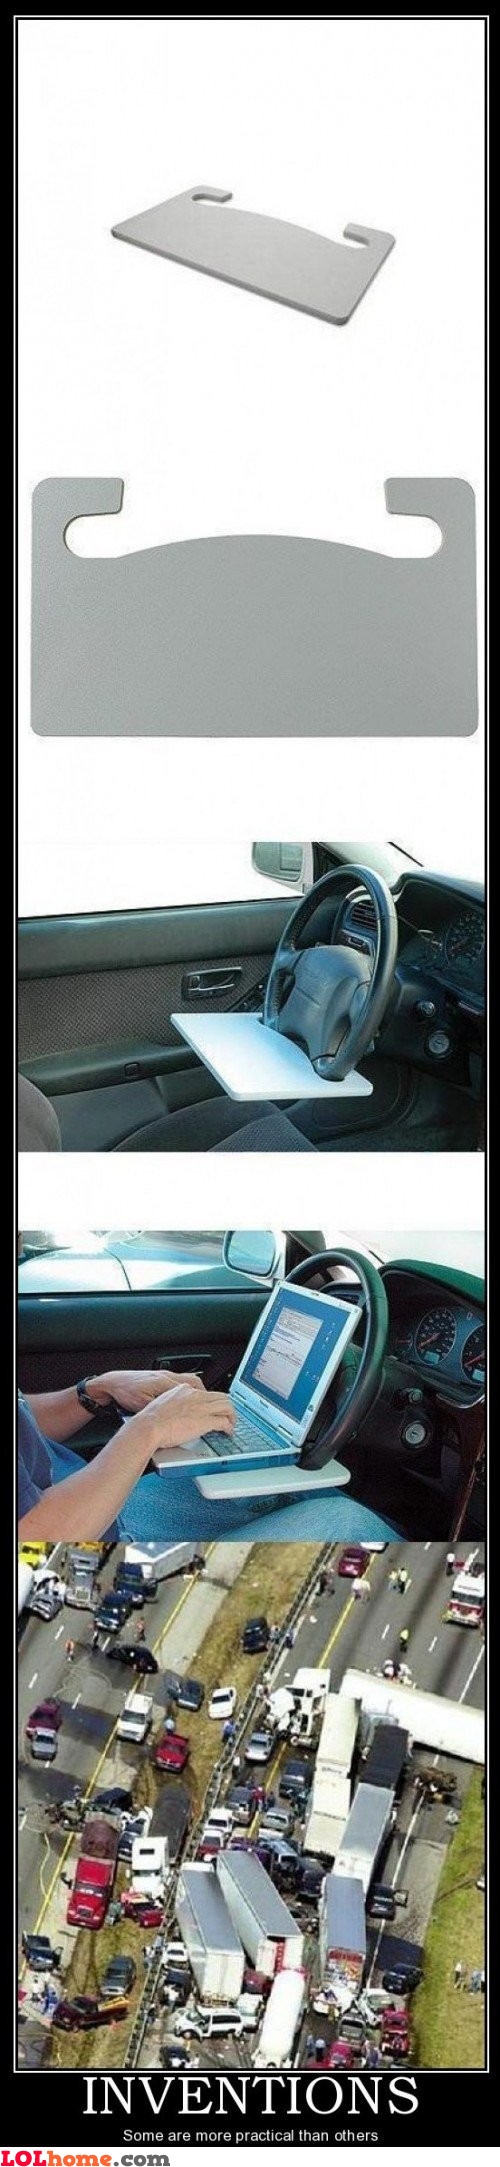 http://www.lolhome.com/img_big/practical-inventions.jpg